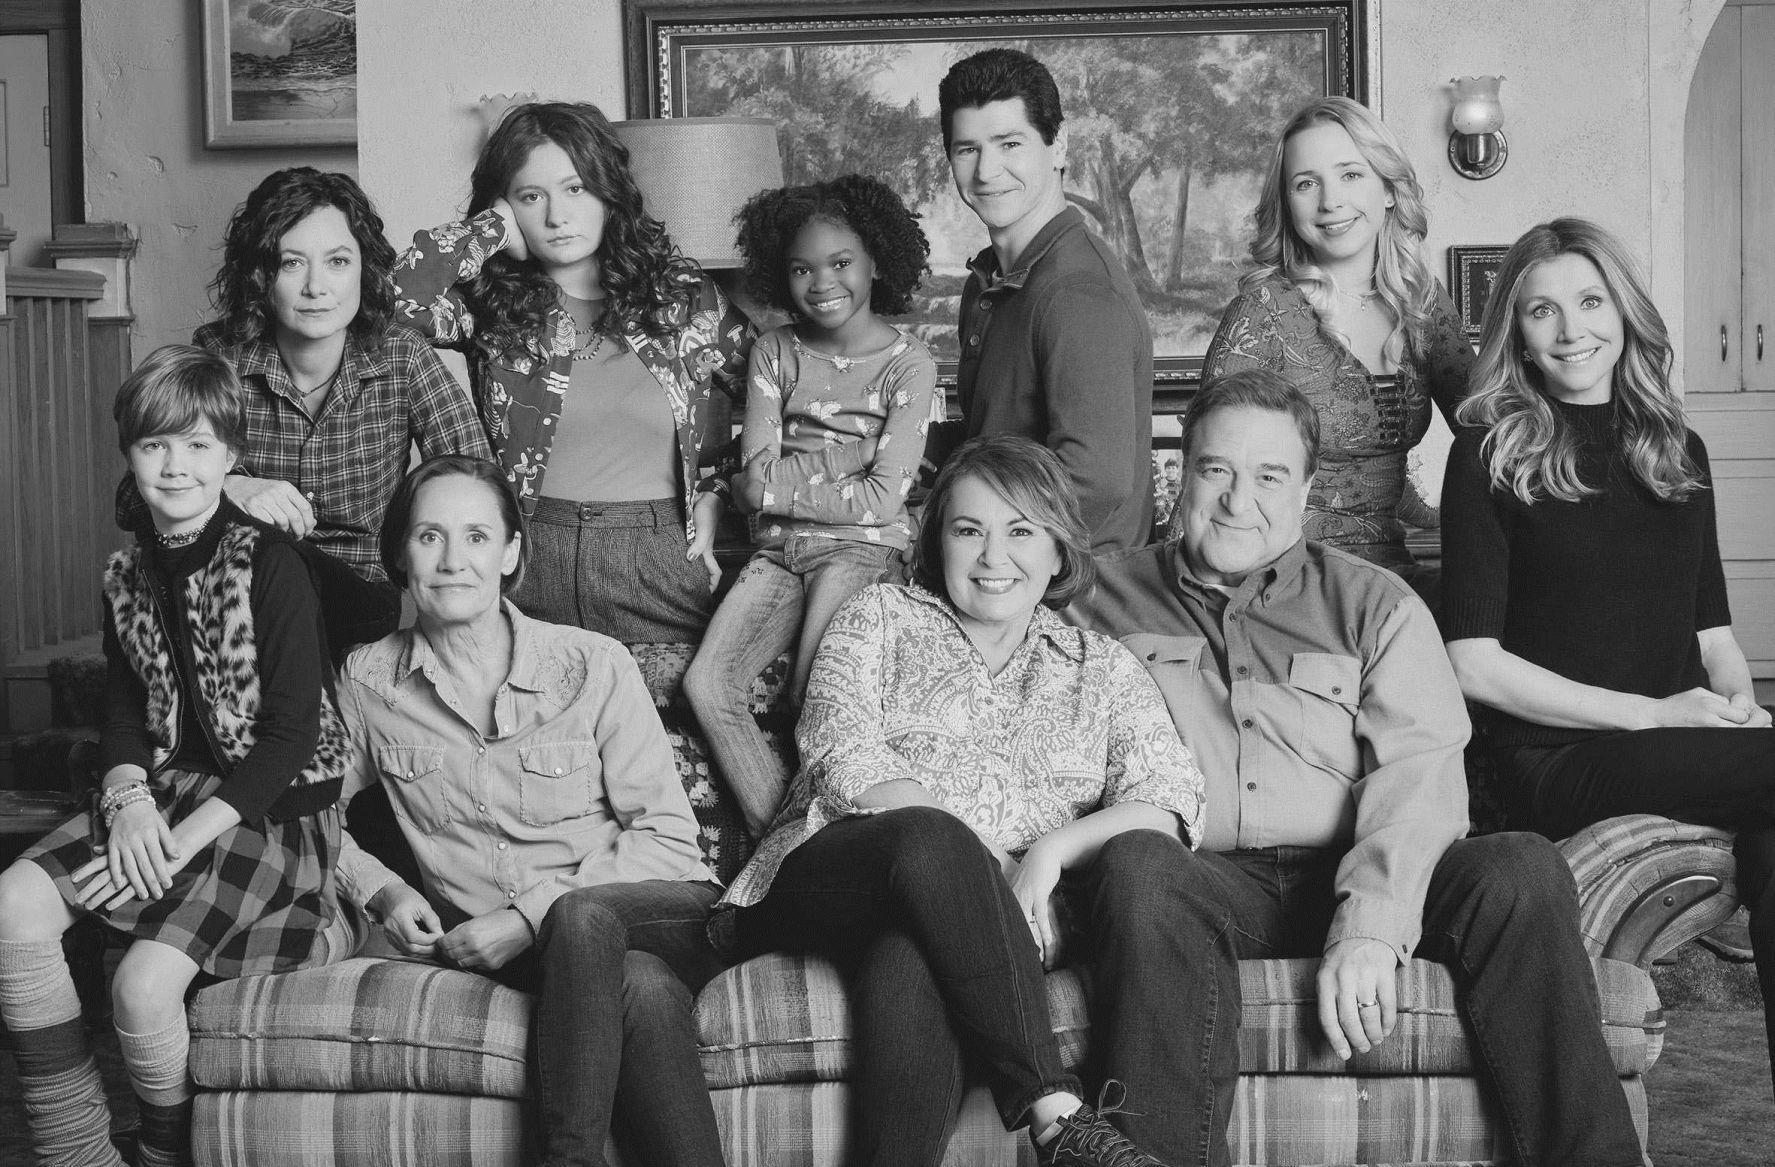 'Roseanne' revival comes at good time